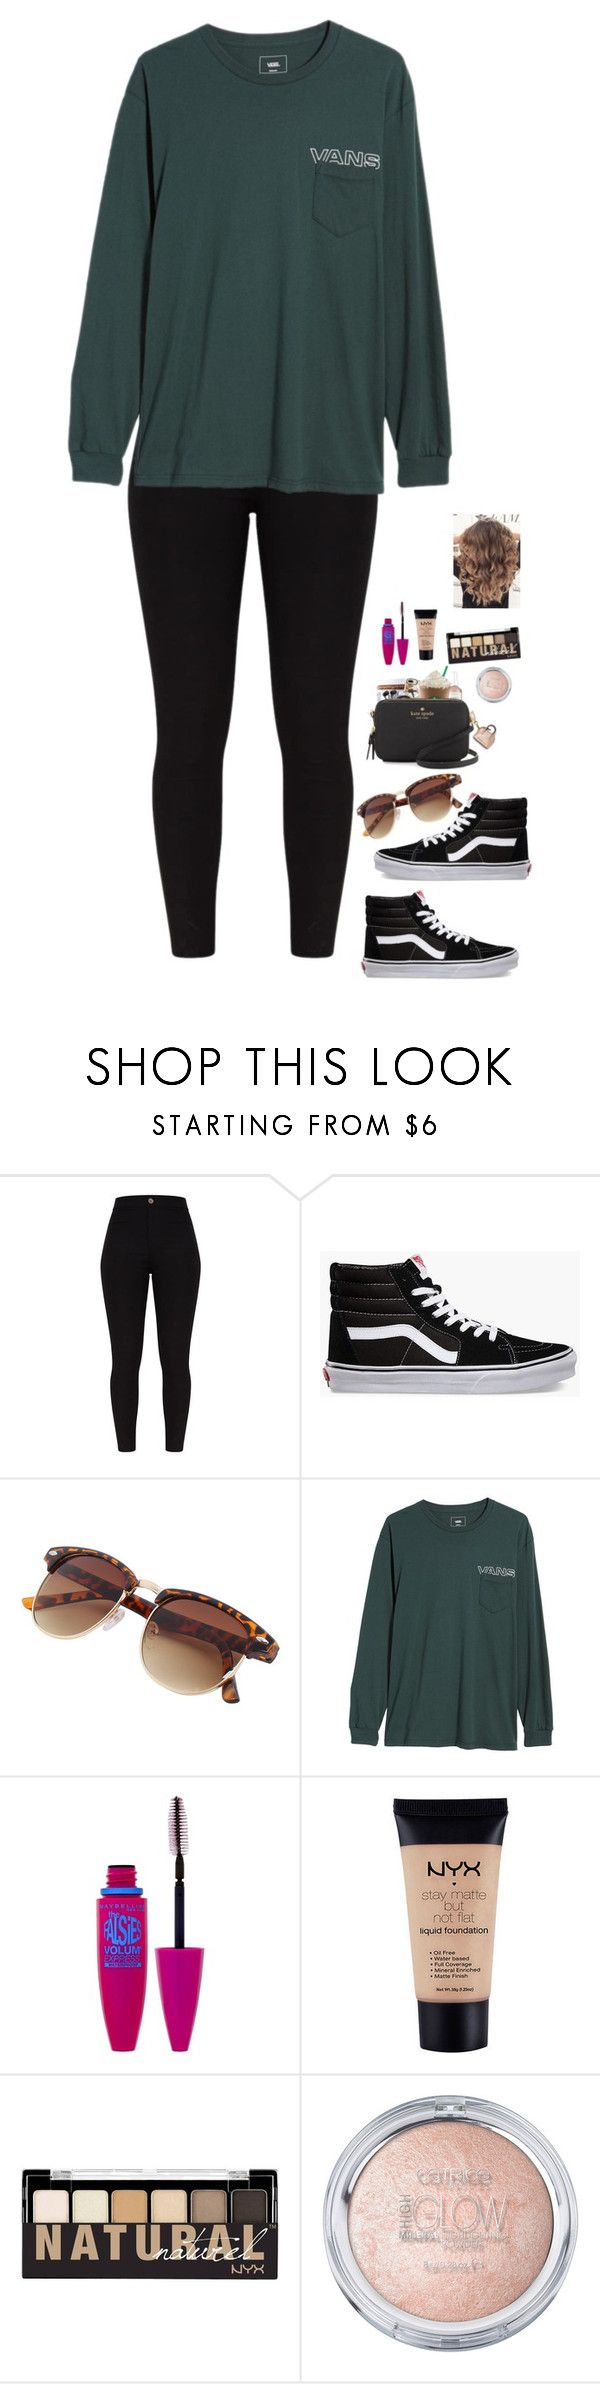 """""""hanging out w/ bestie!!!"""" by totallyelizabeth ❤ liked on Polyvore featuring Vans, Maybelline, NYX, besties and BestFriends"""